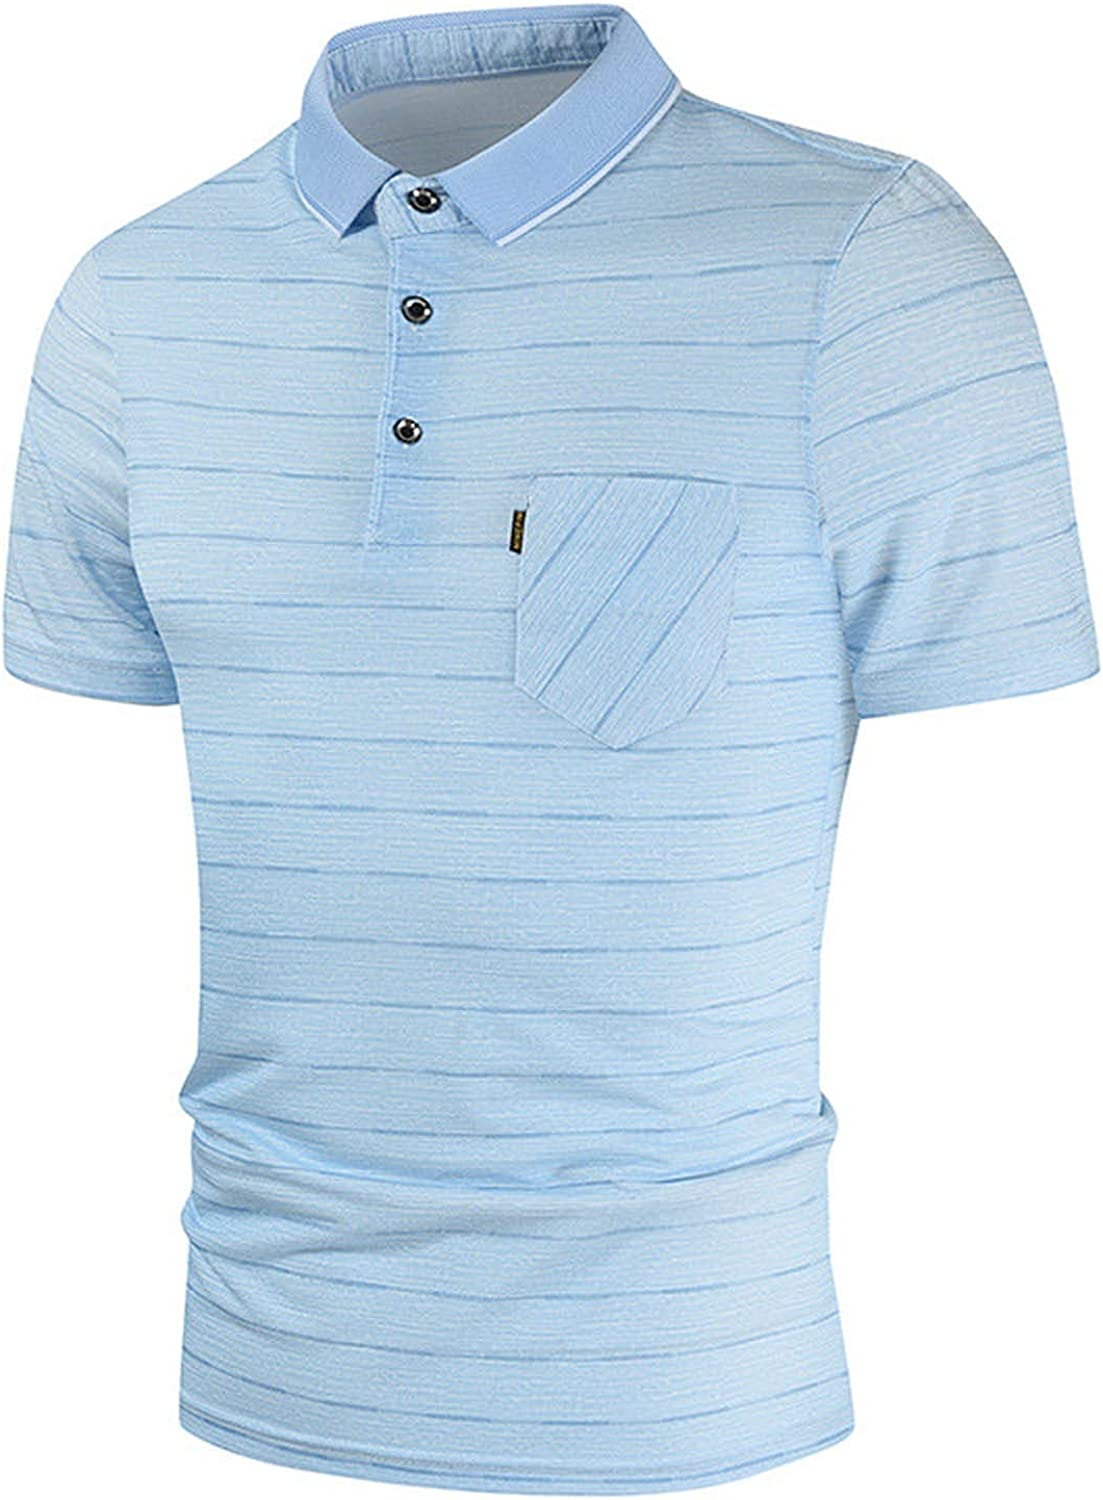 LIEIKIC Men's Short Sleeve Casual Striped Contrast Color Polo Shirts with Pockets